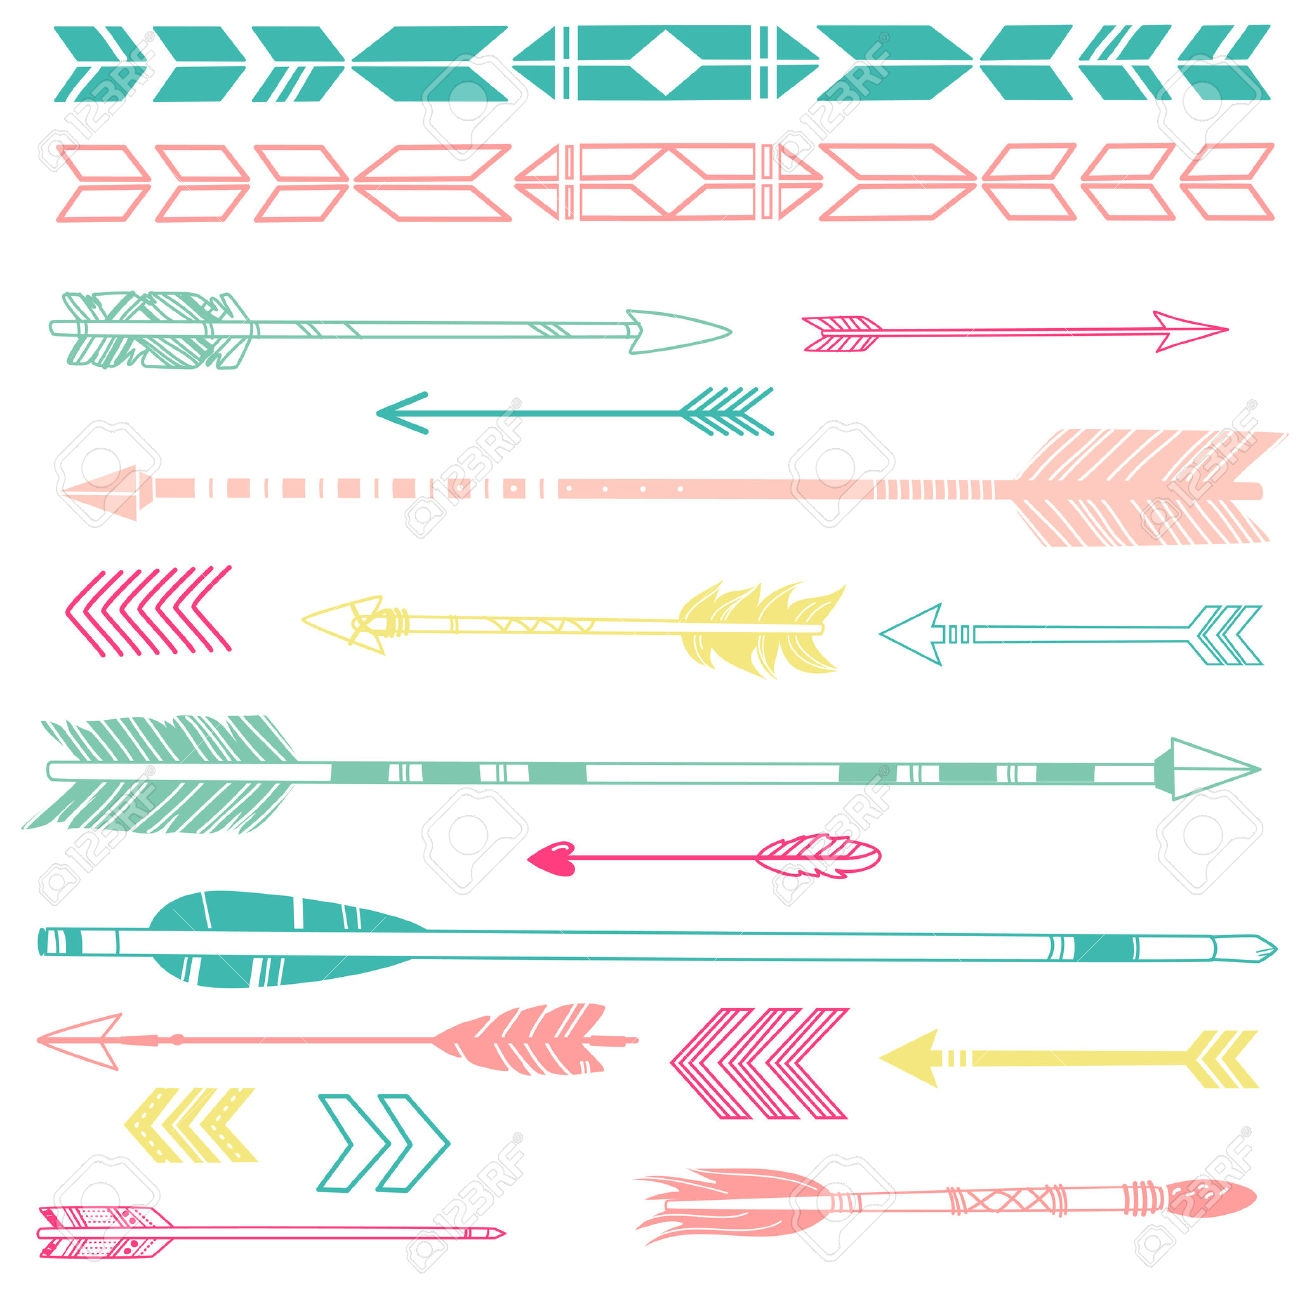 Cute trible arrow clipart picture Indian heart cute clipart - ClipartFest picture